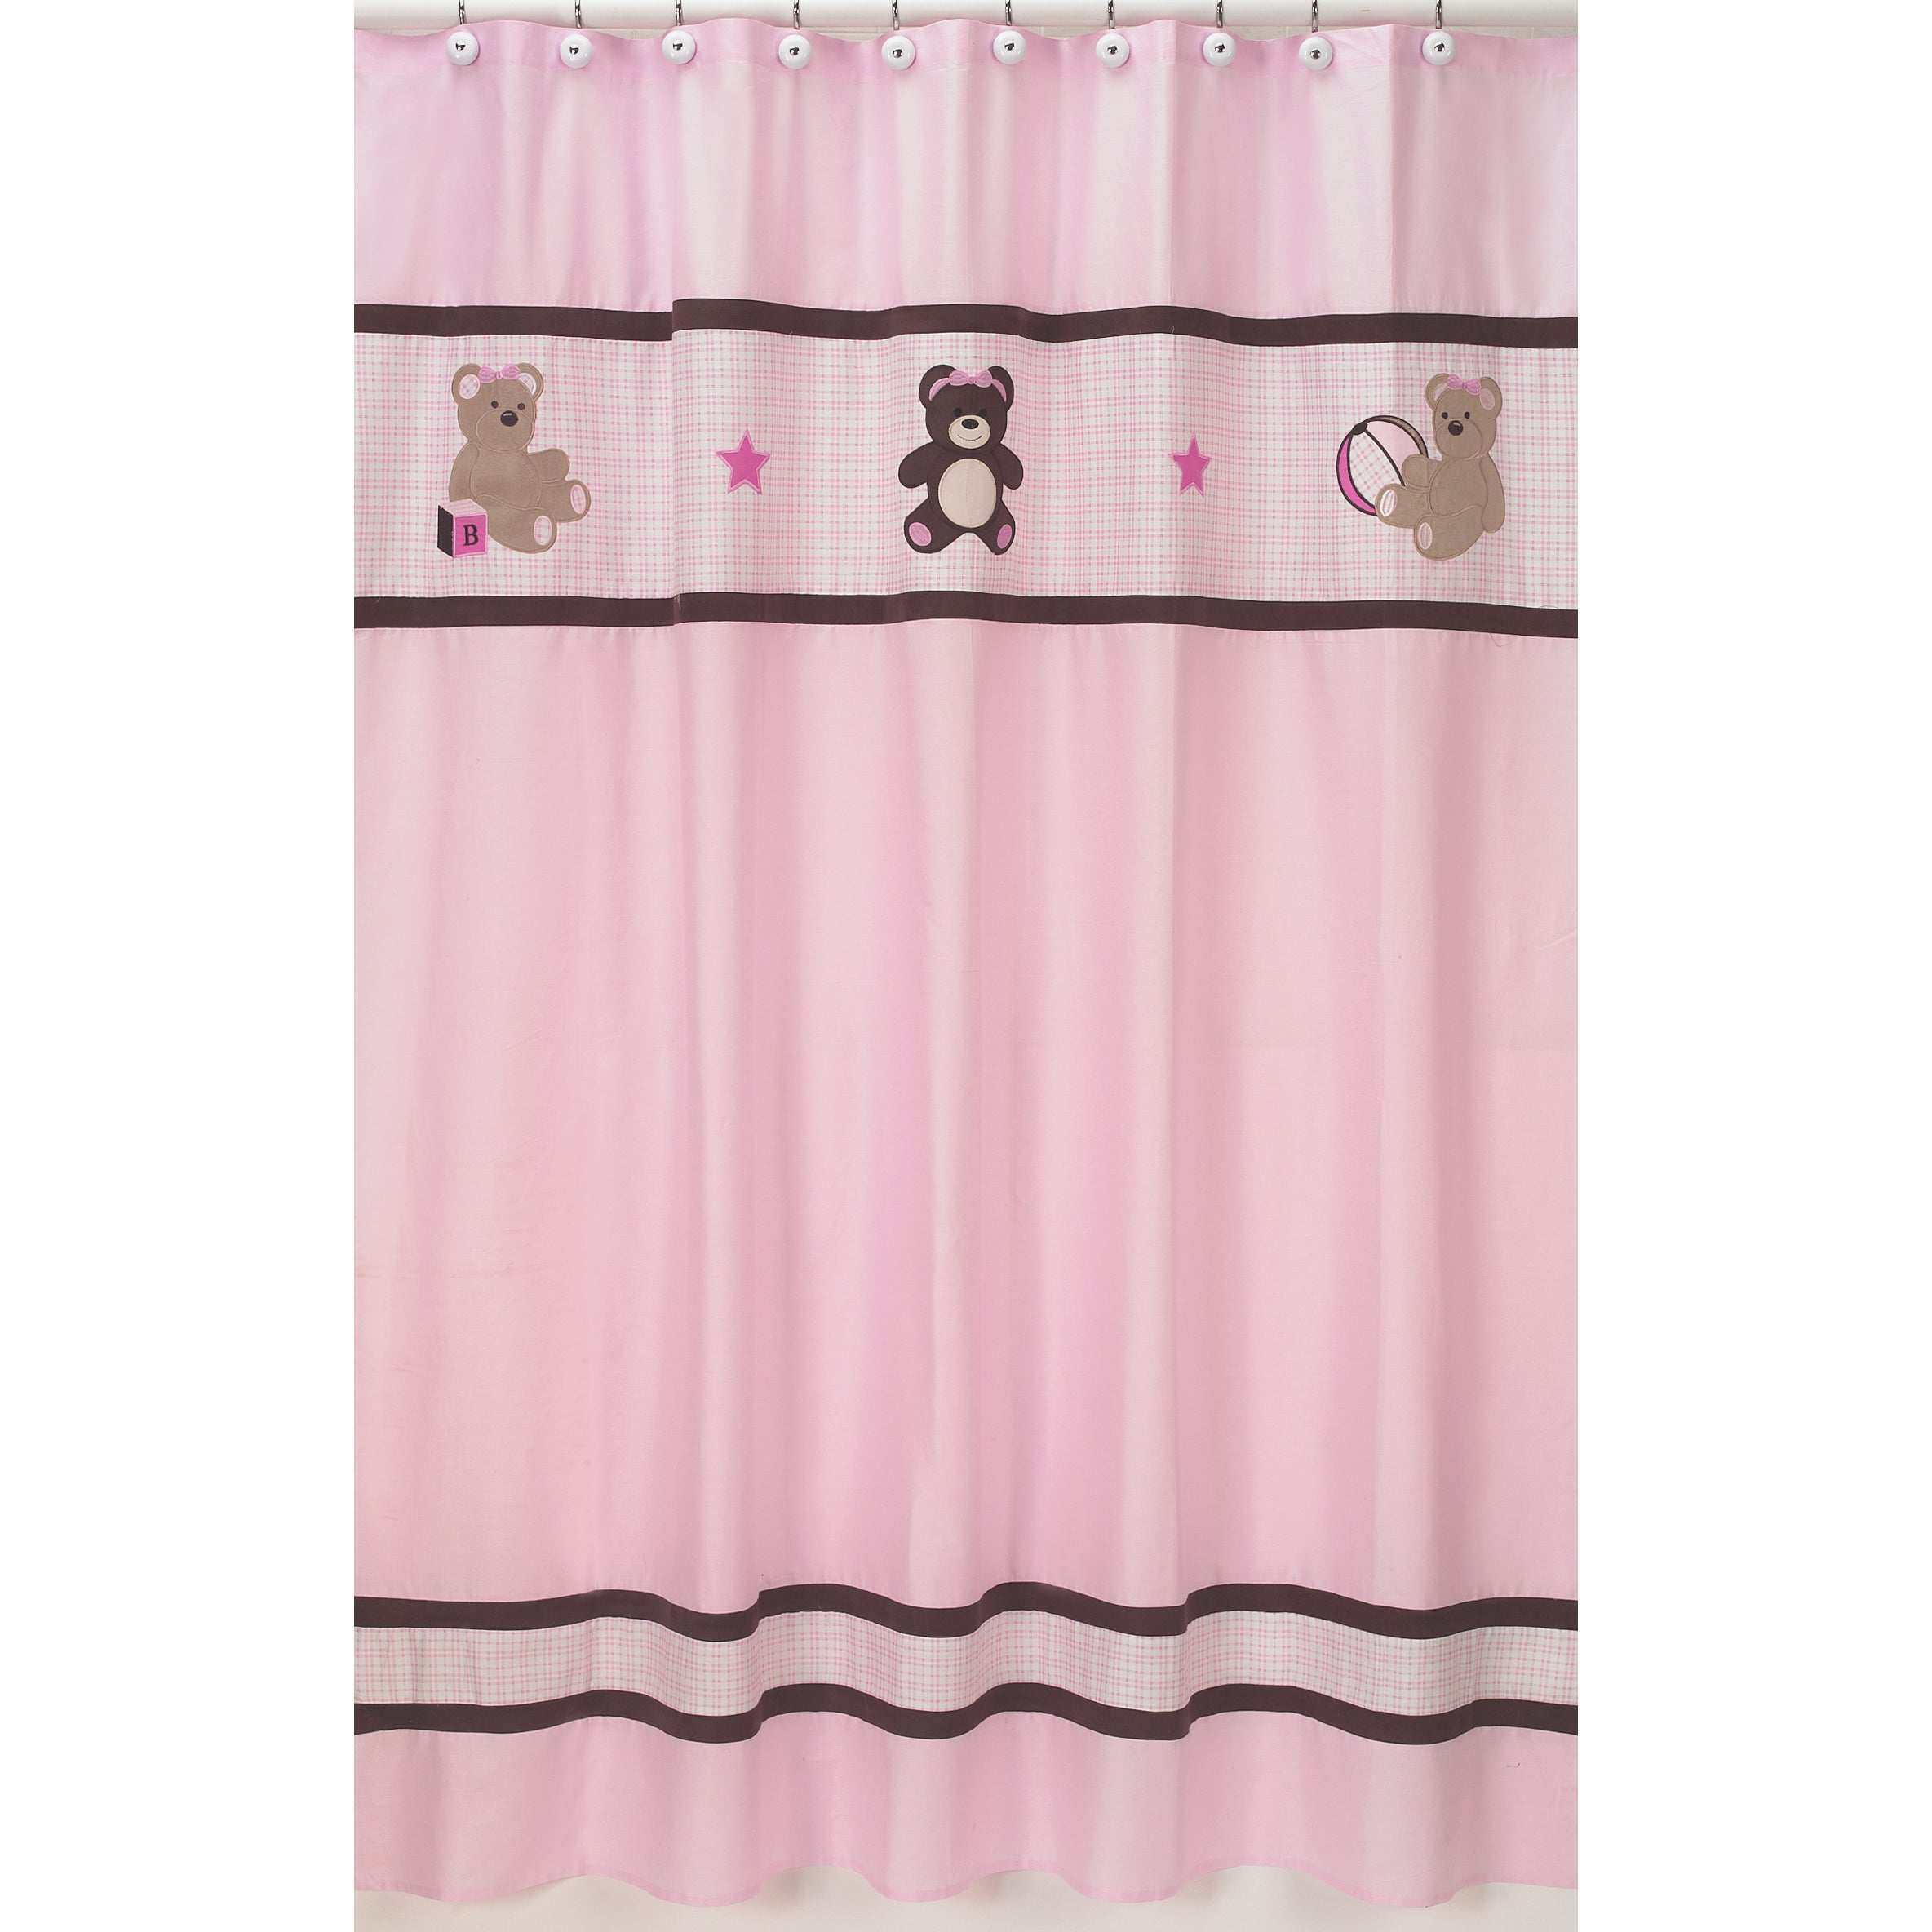 Sweet Jojo Designs Pink Teddy Bear Kids Shower Curtain at Sears.com